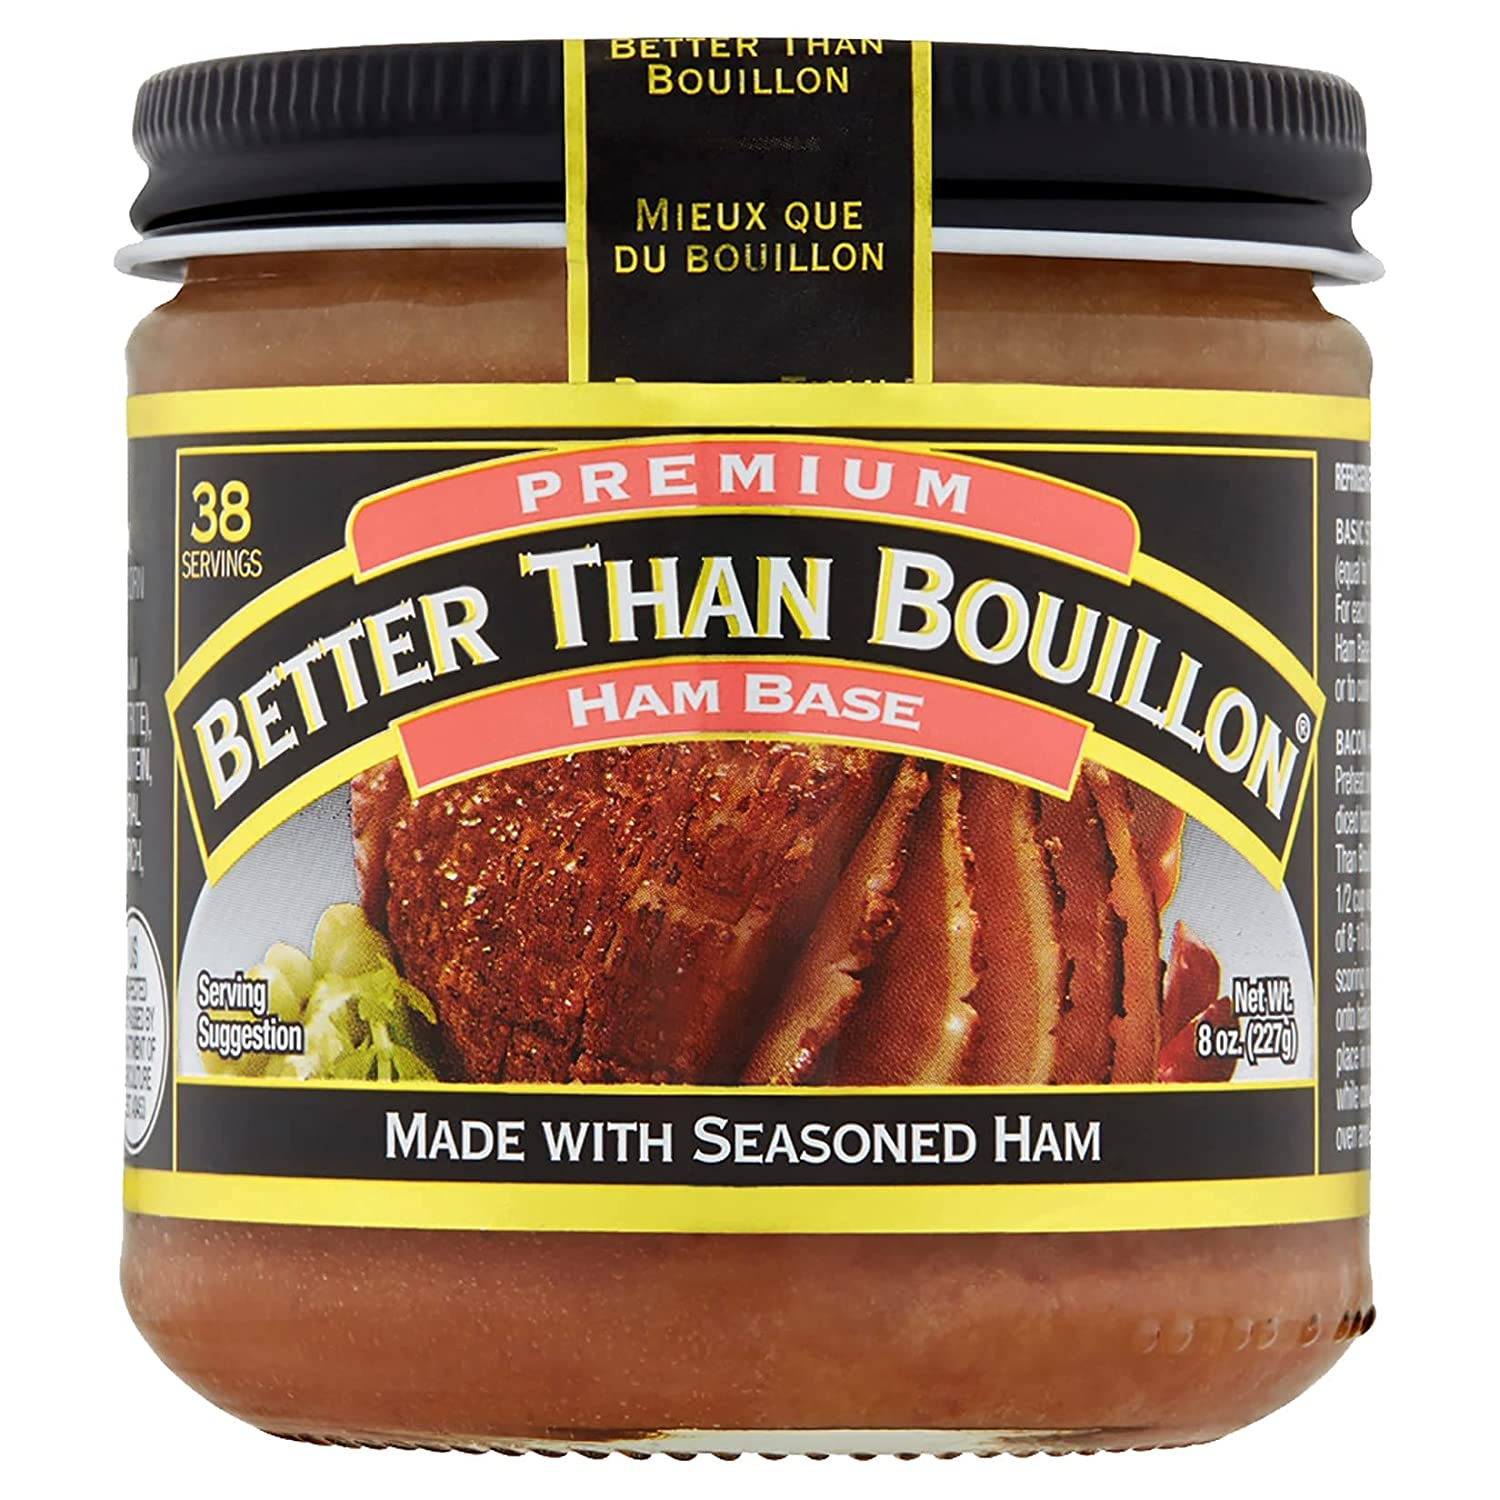 Better Than Bouillon Premium Ham Seasoned Made Cheap mail order shopping with B Base safety